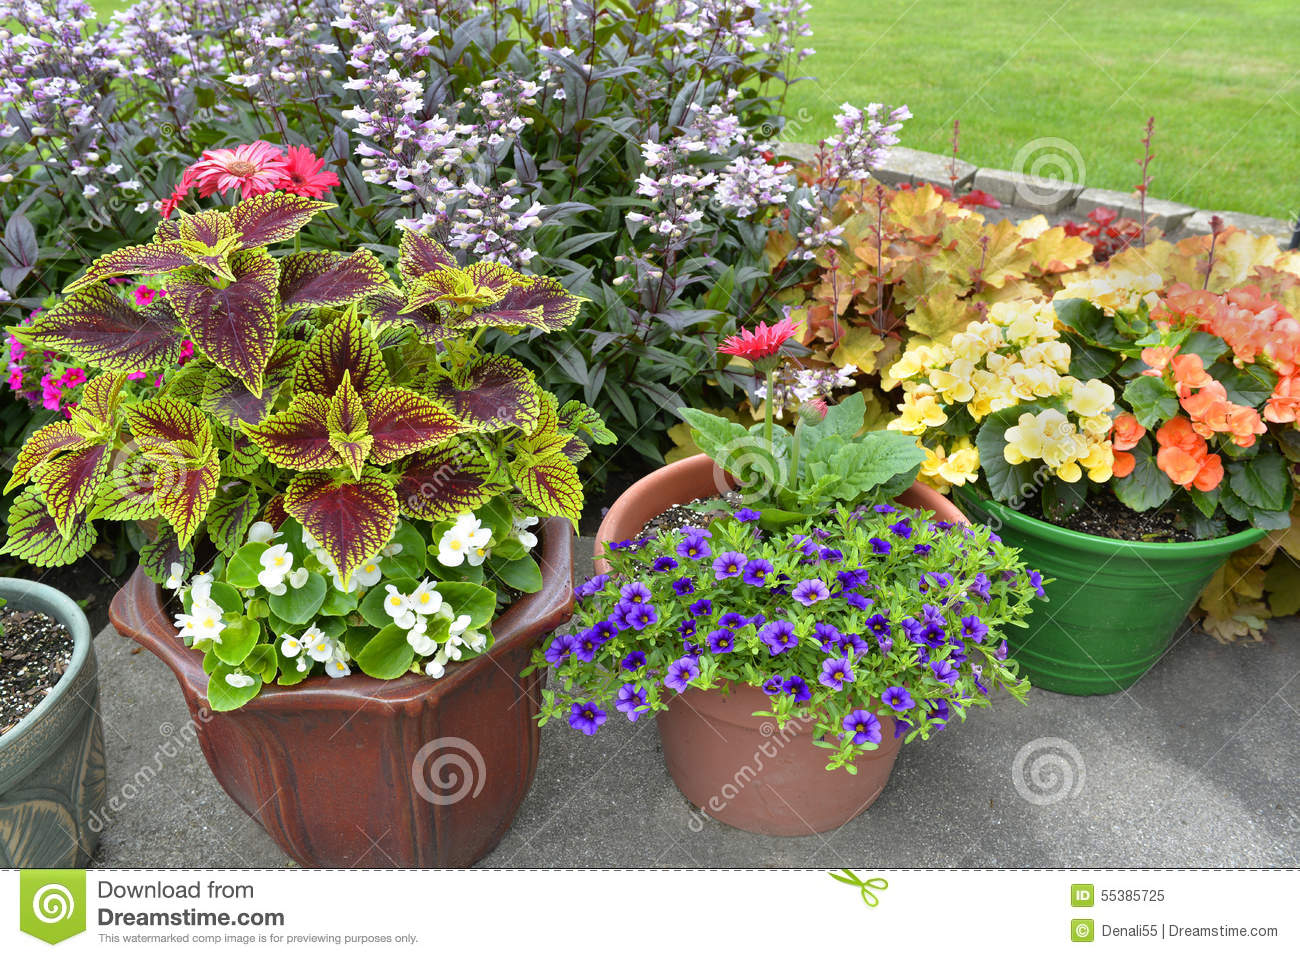 Marvelous Royalty Free Stock Photo. Download Patio Of Potted Plants. ...